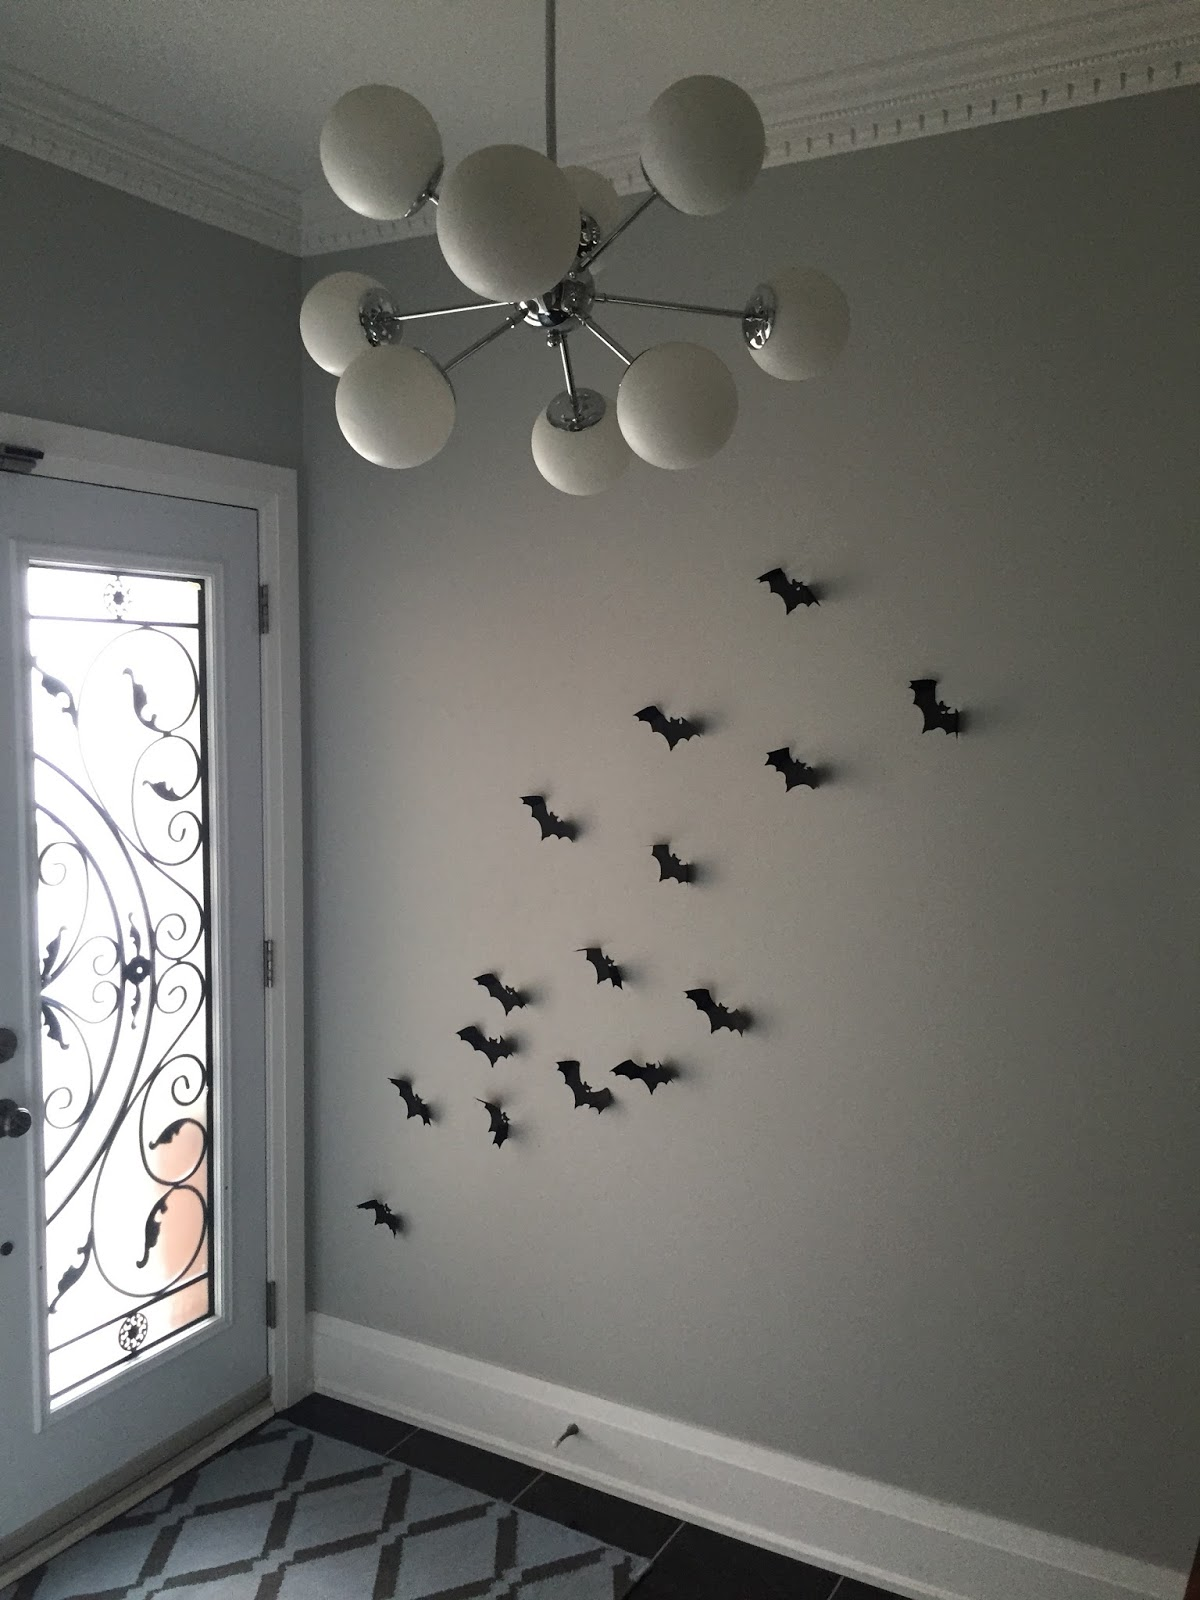 Such A Simple And Great Way To Tempity Decorate Walls In Your Home Take Look Below For Photos Of My Foyer Wall With The Bats